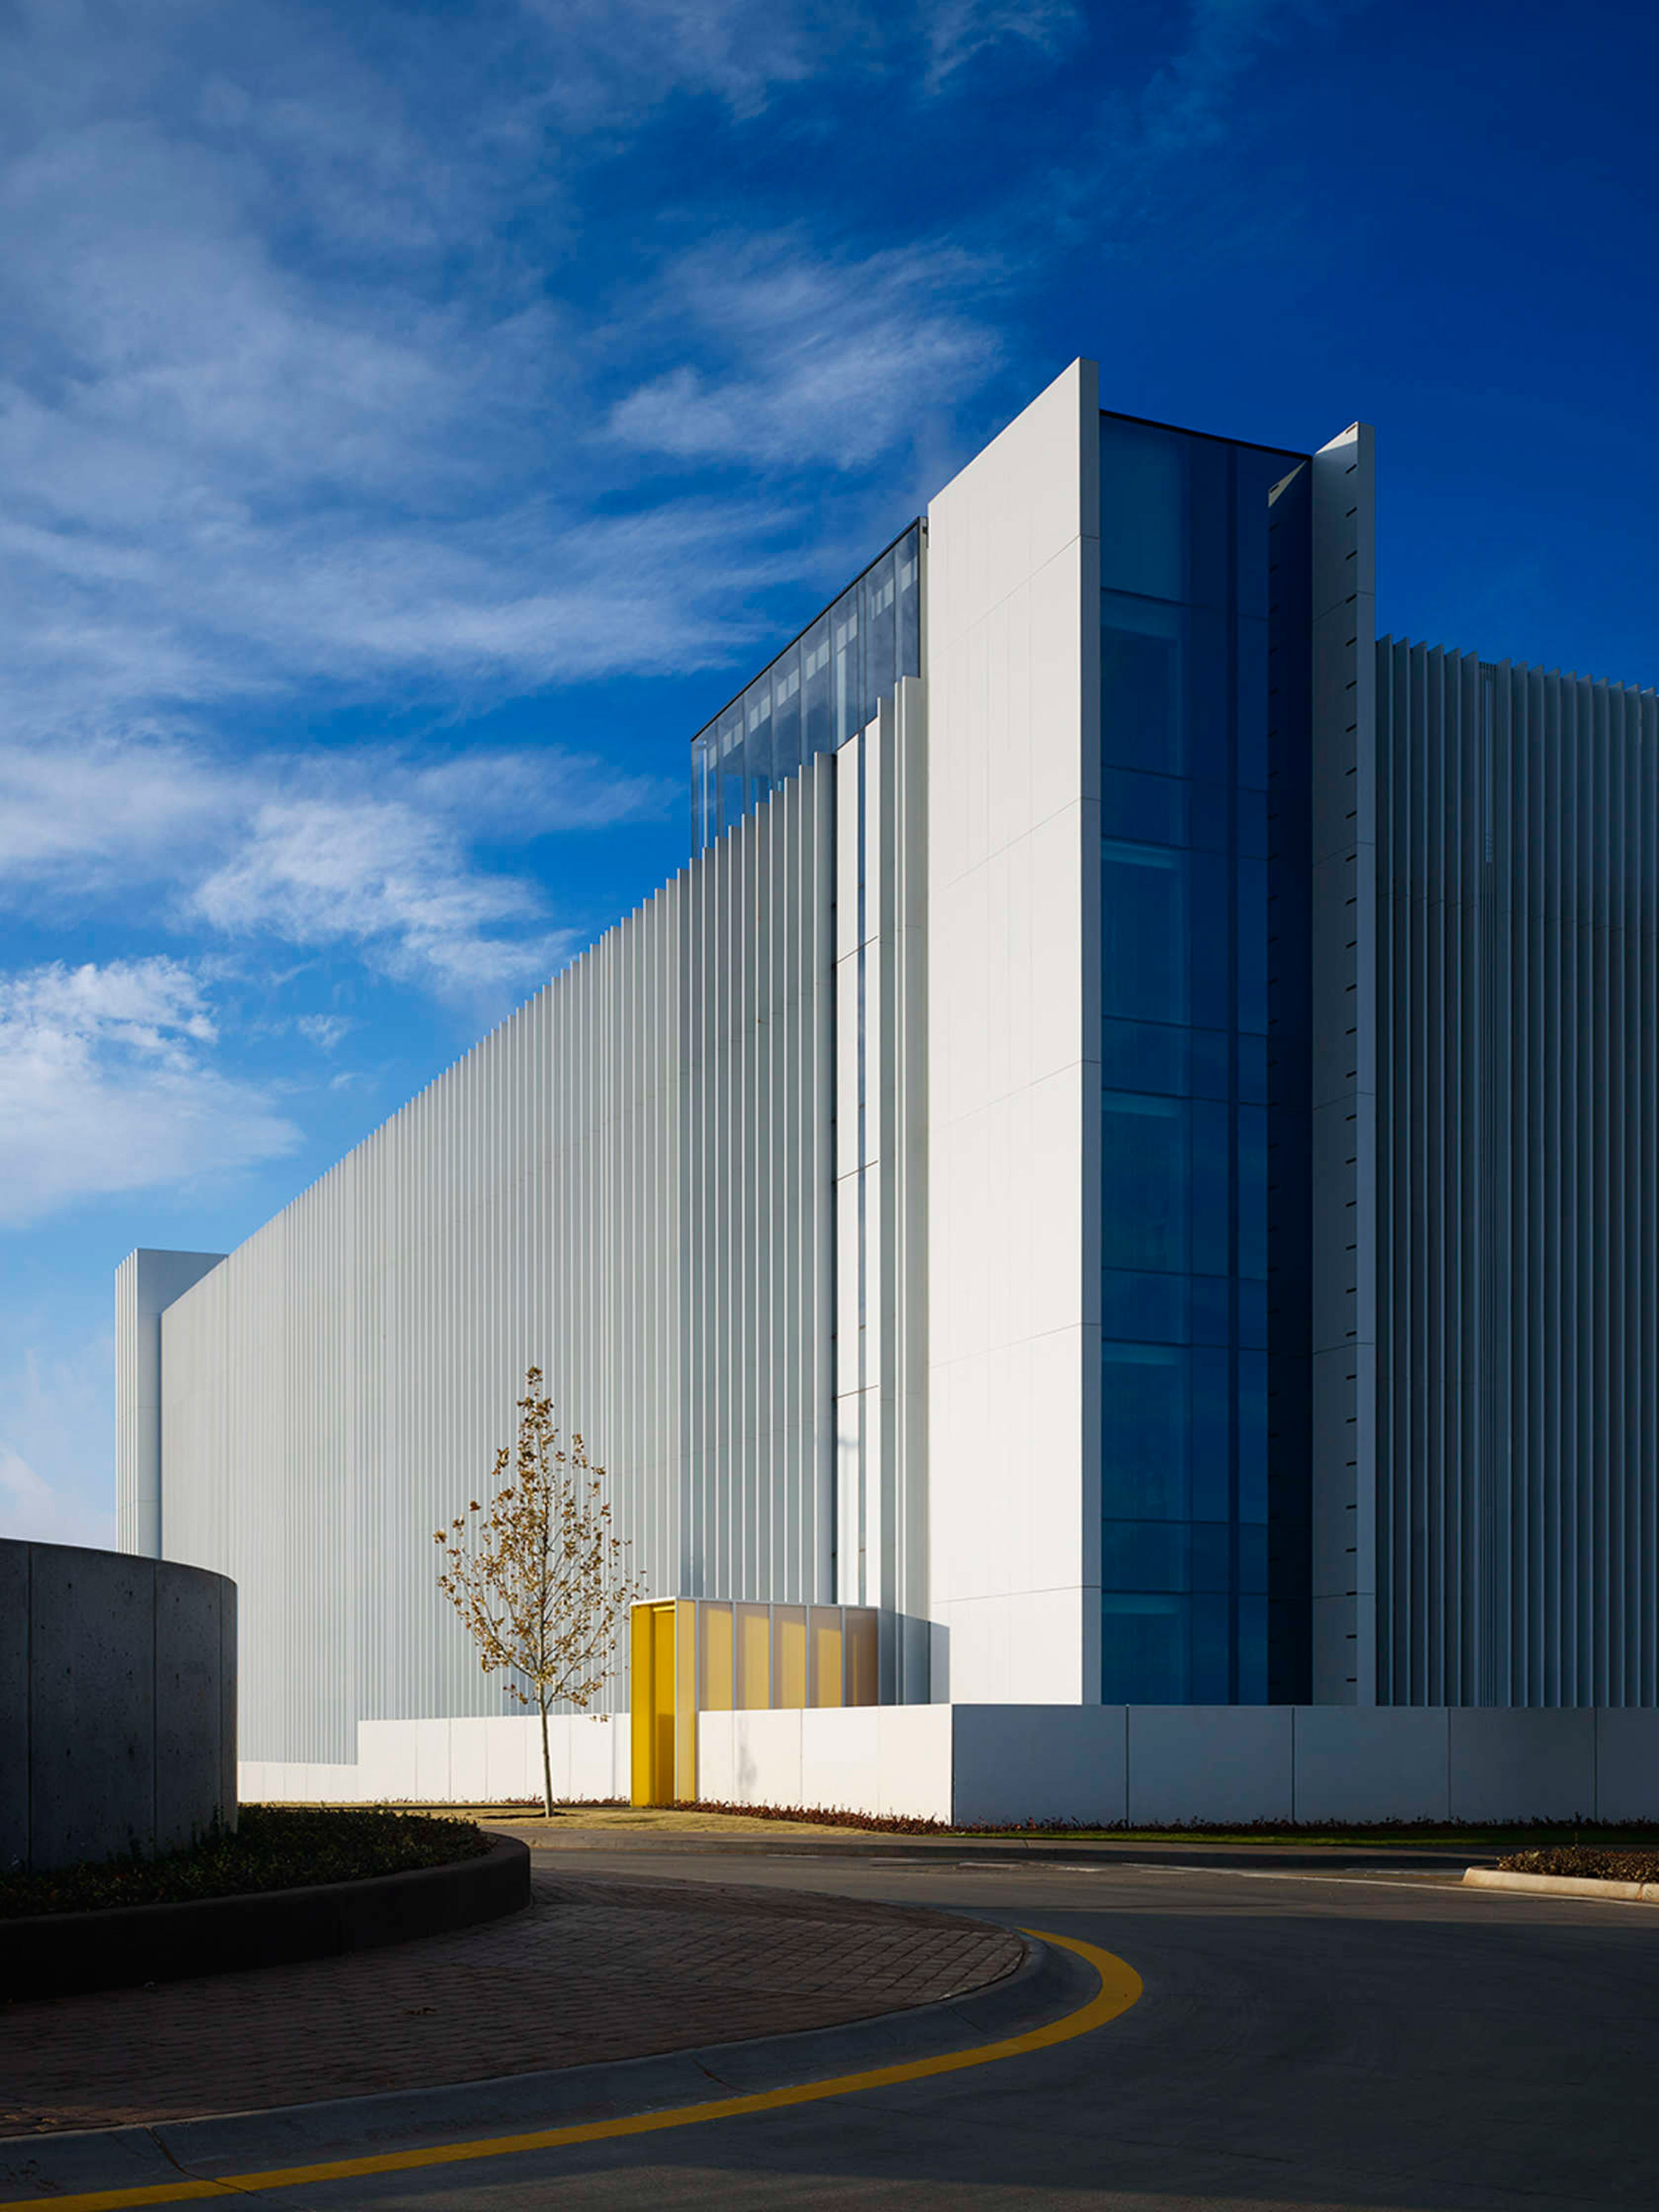 Elliott + Associates wraps Chesapeake car park in white fins